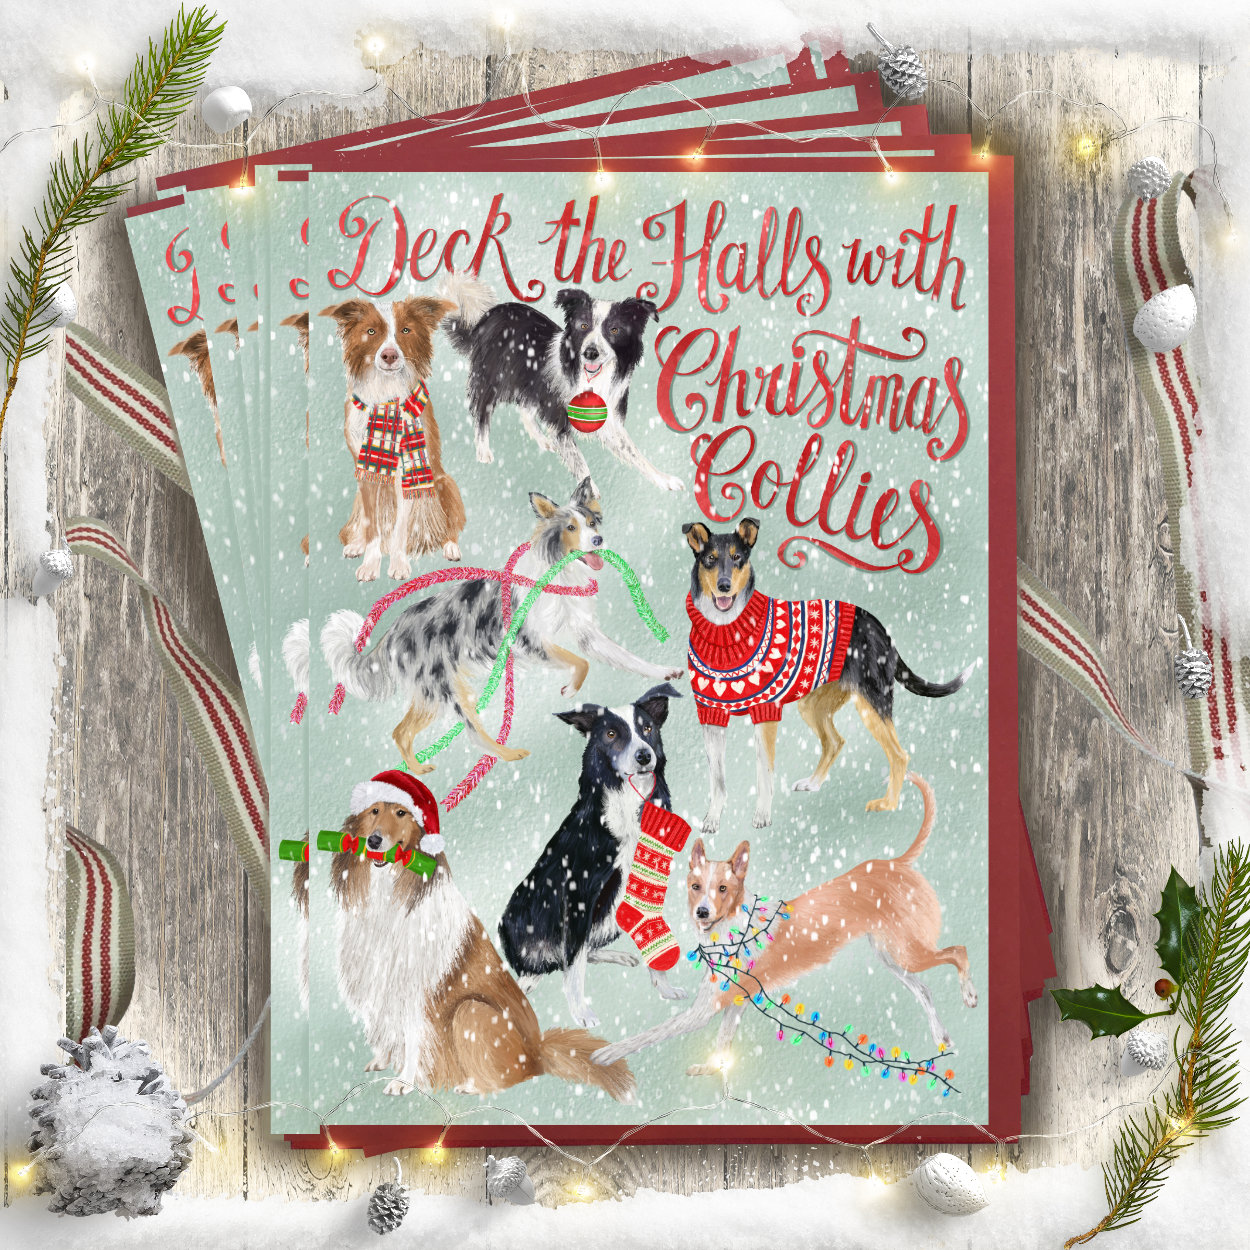 Collie Dog Christmas Card | The Enlightened Hound